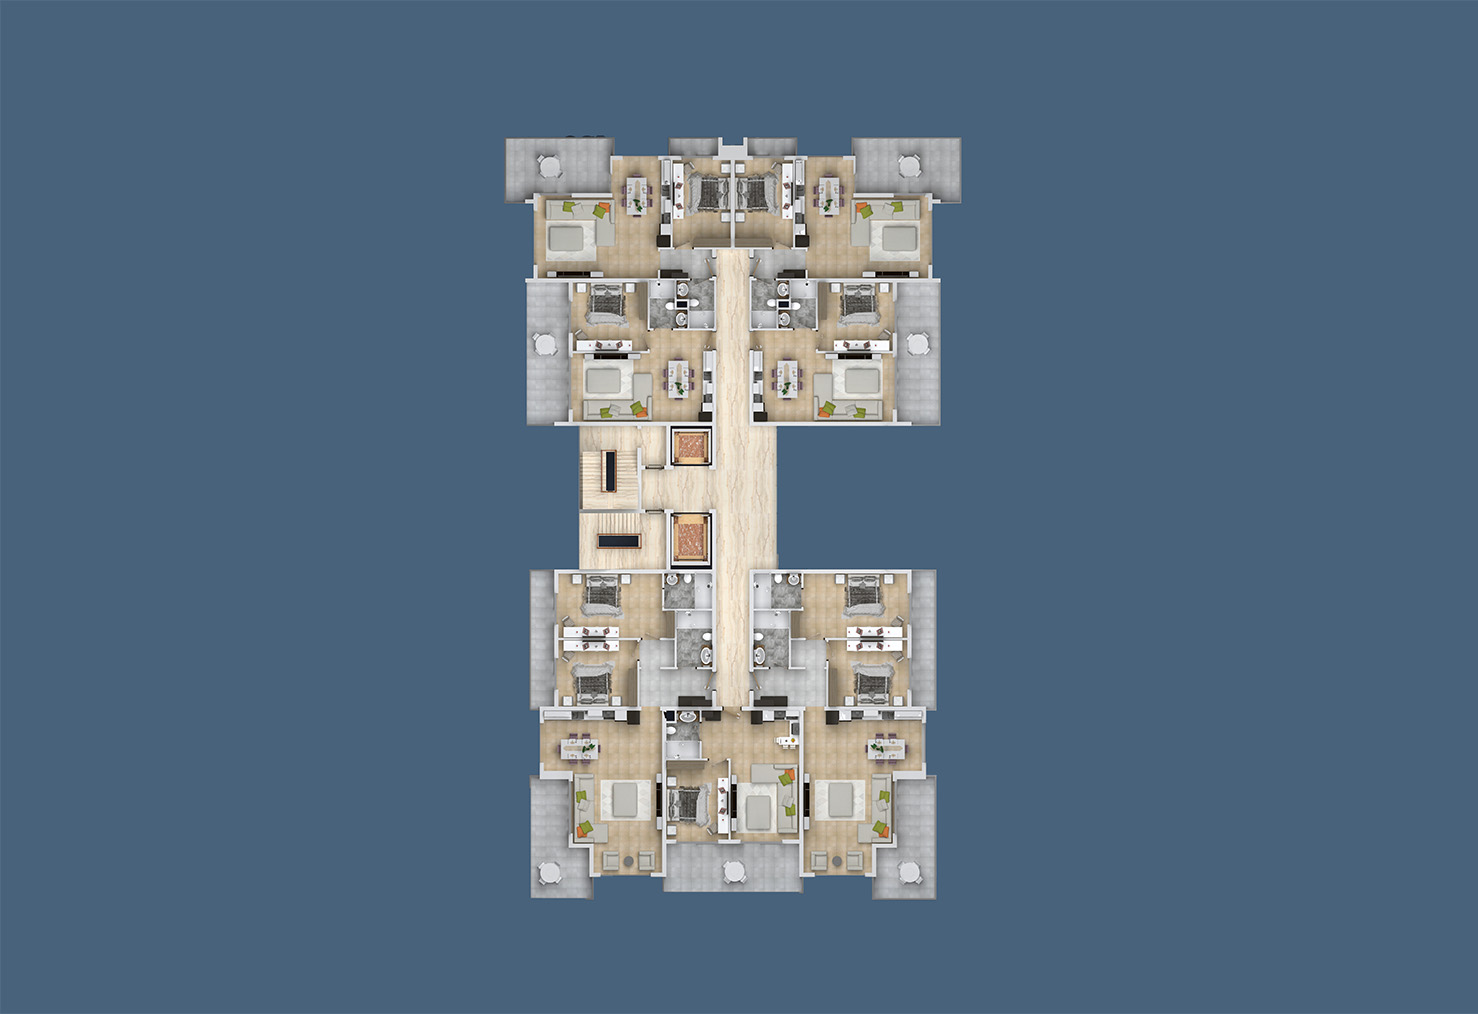 Floor plans of apartments 5 floor «B» Yekta Kingdom Trade Center